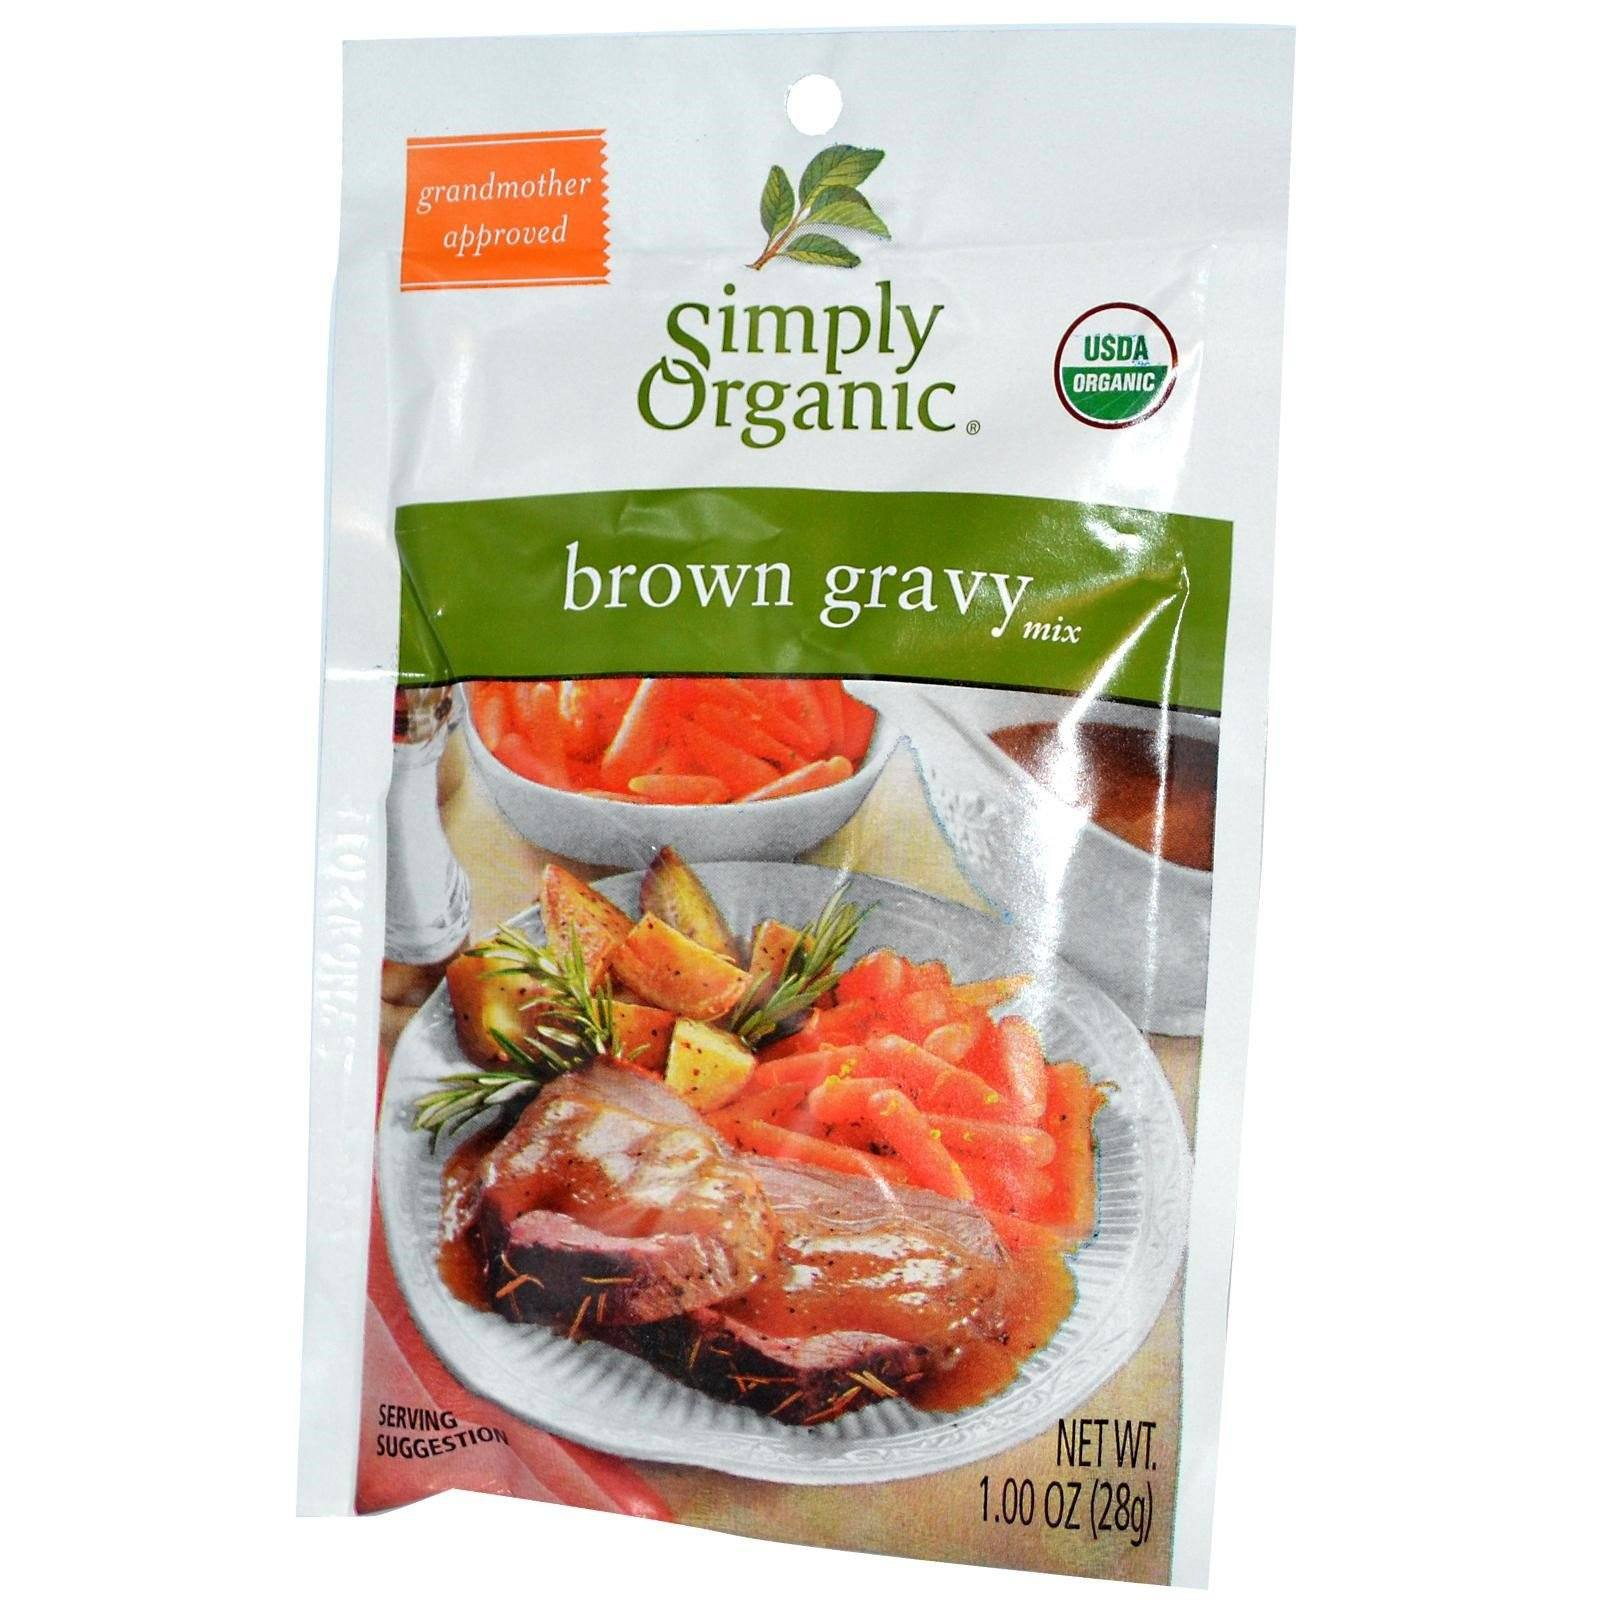 Food & Drink - Simply Organic - Vegetarian Brown Gravy Mix, 25g